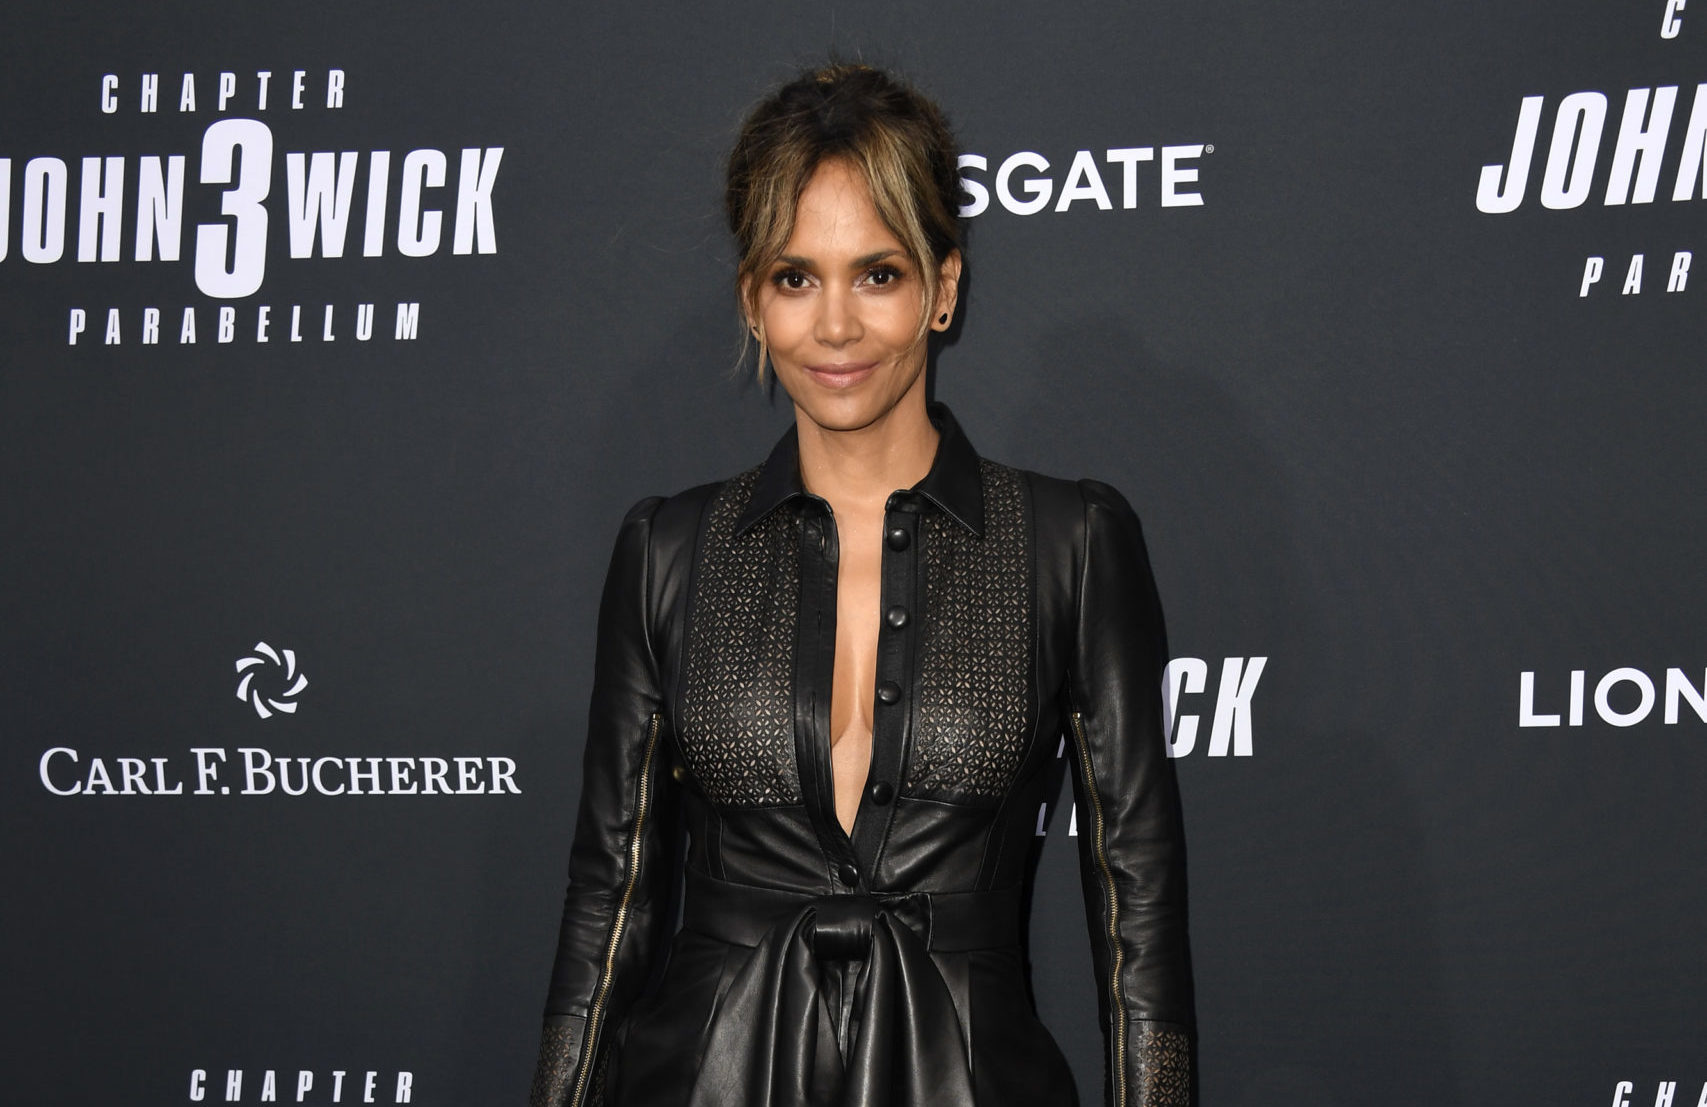 Halle Berry Reveals That She Broke Two Ribs While Filming Her New Movie 'Bruised' & Chose Not To Stop Production